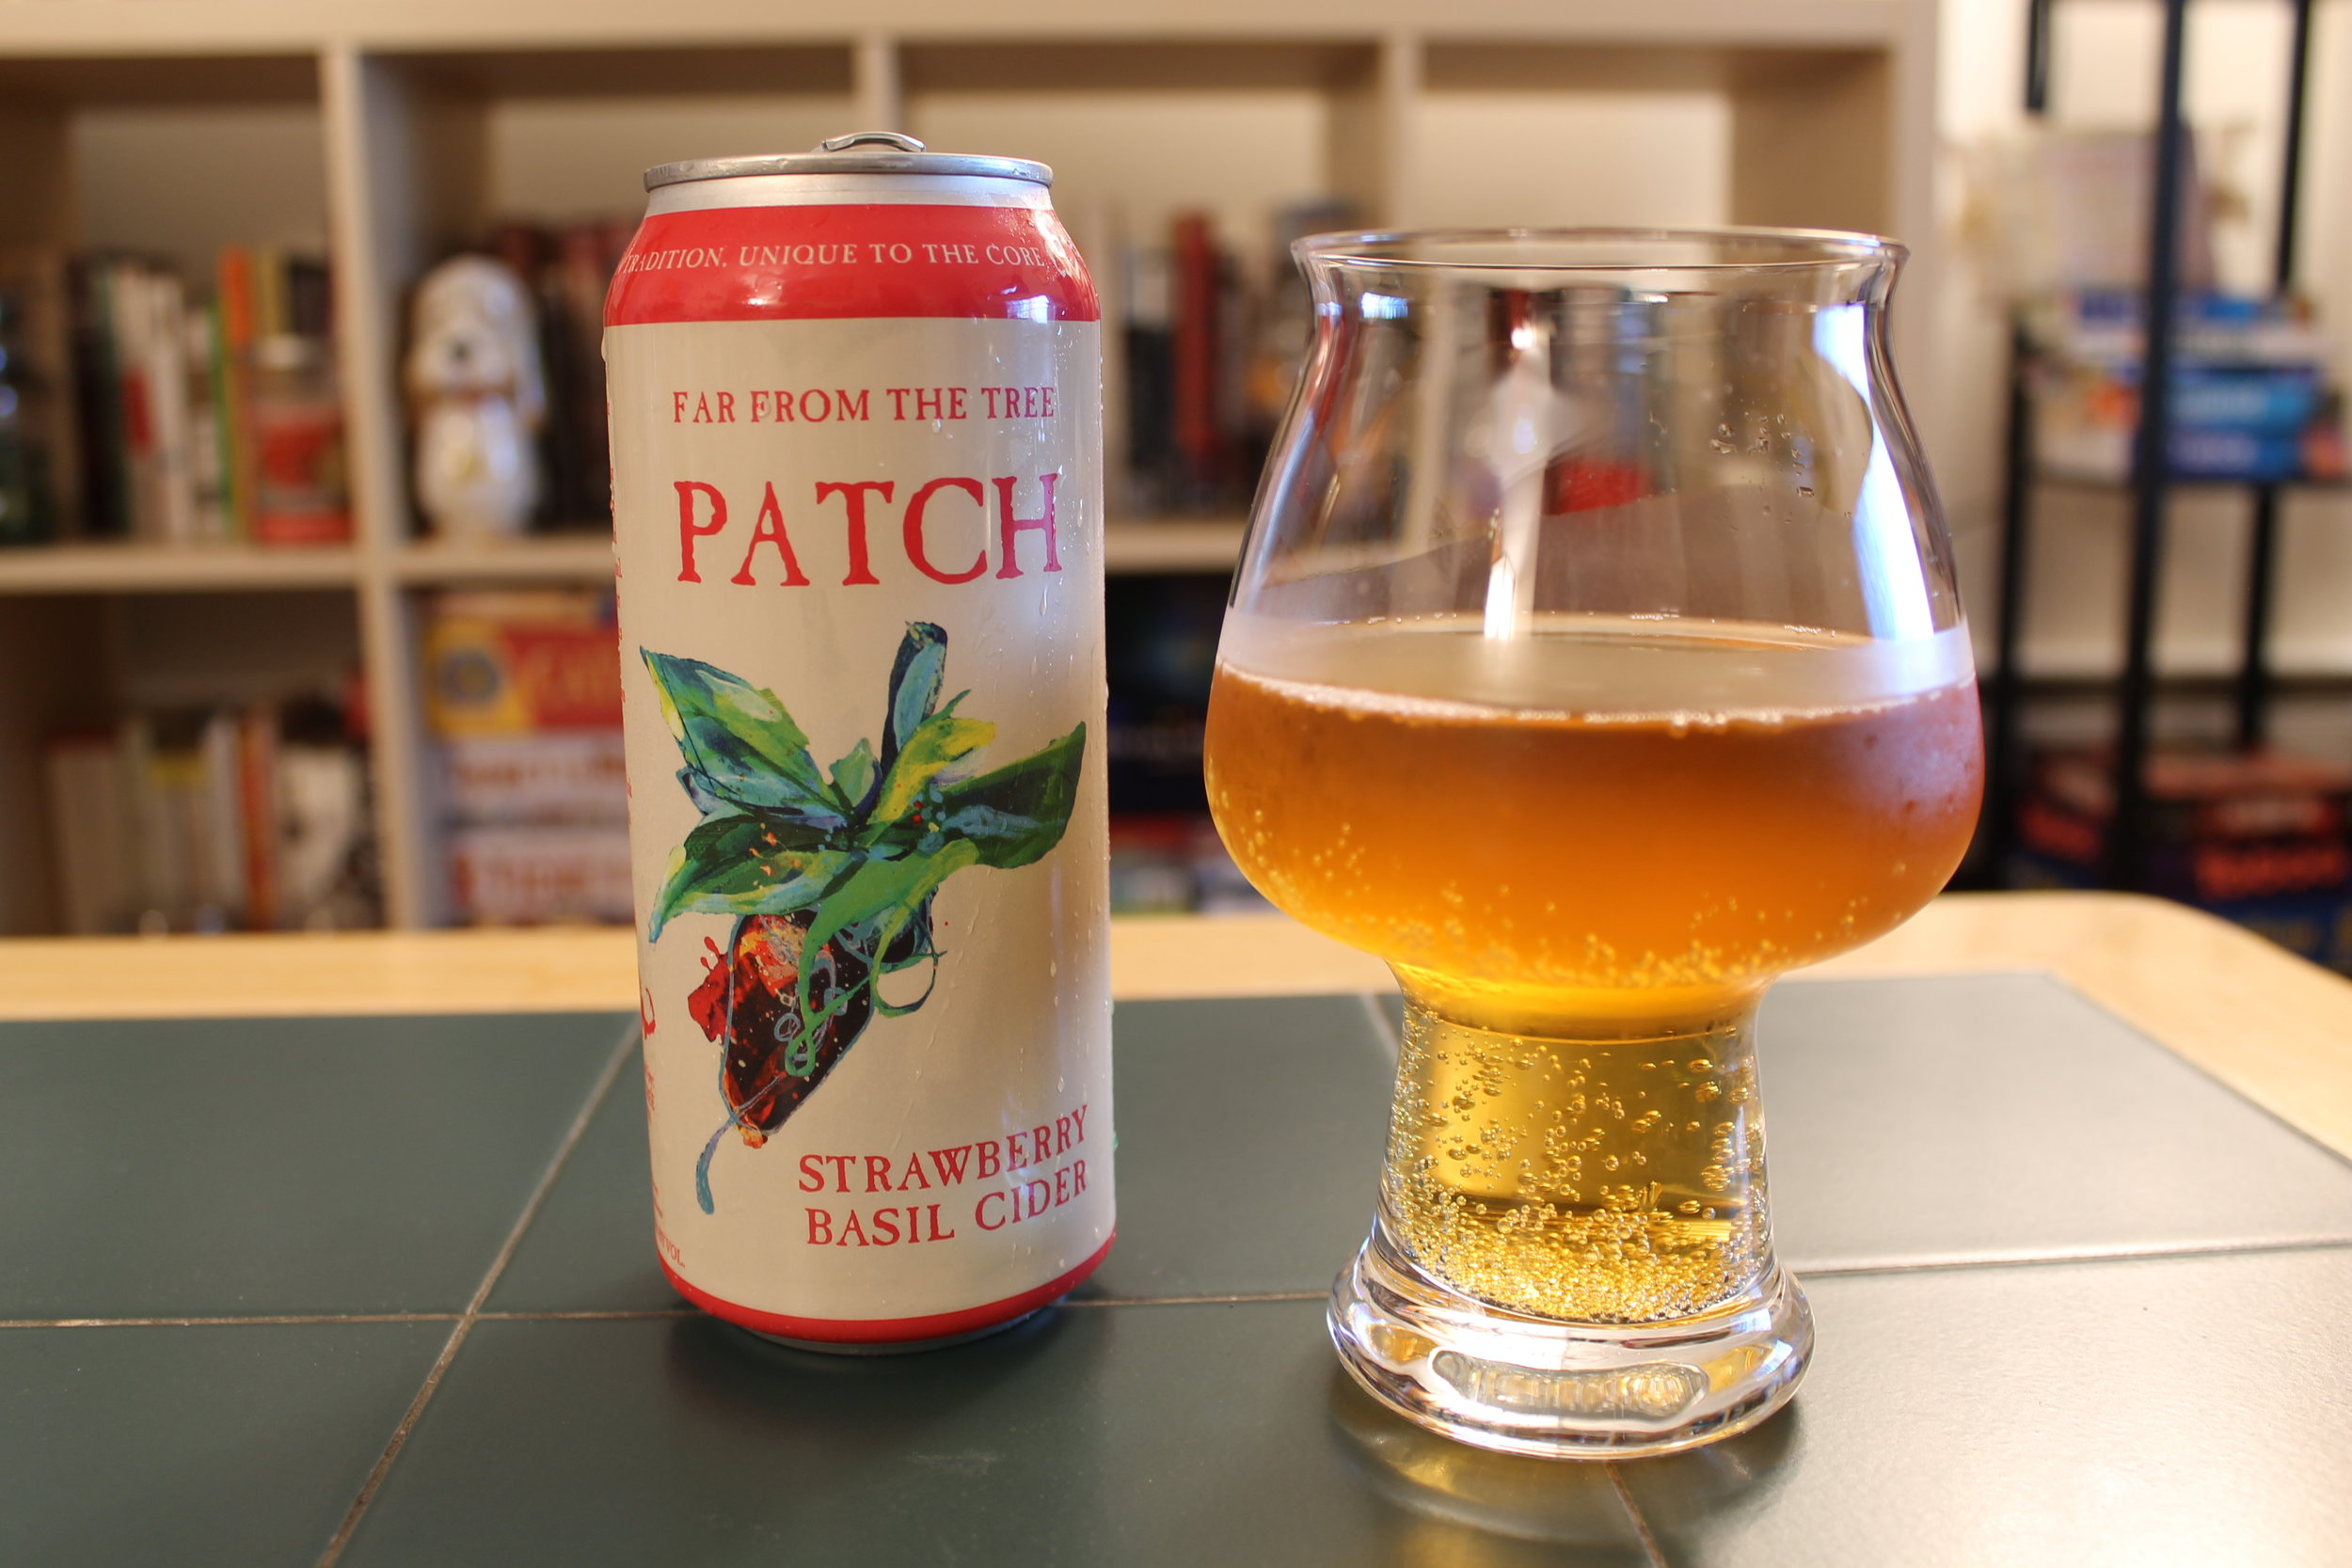 Far from the Tree - Patch